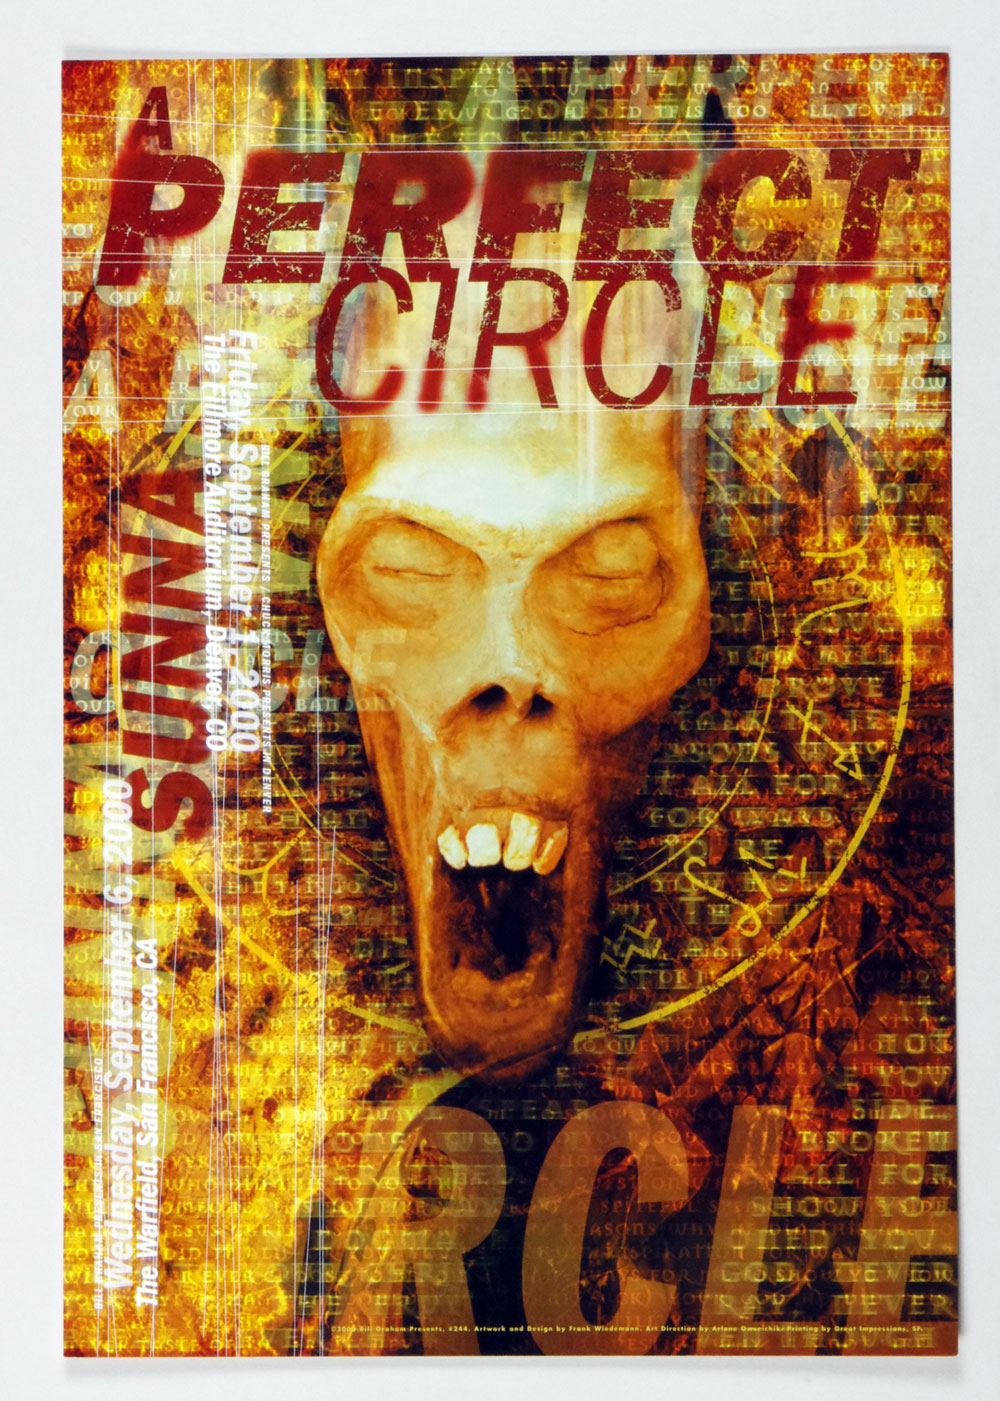 Bill Graham Presents Poster 2000 Sep 6 A Perfect Circle #244 Frank Weidemann